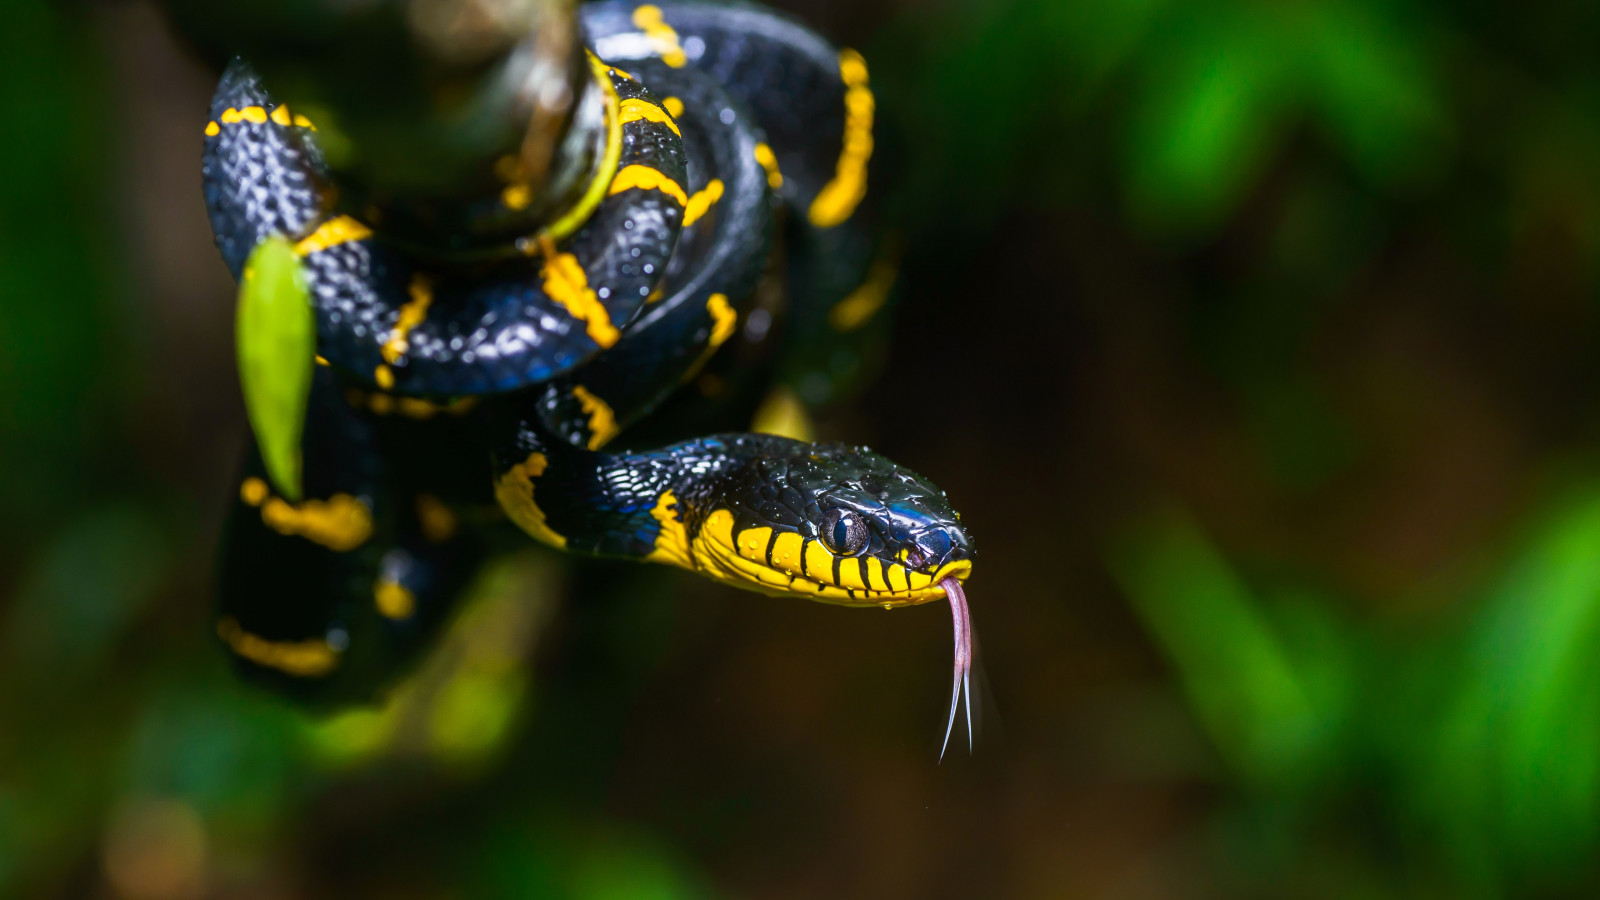 Mangrove snake | 1600x900 wallpaper